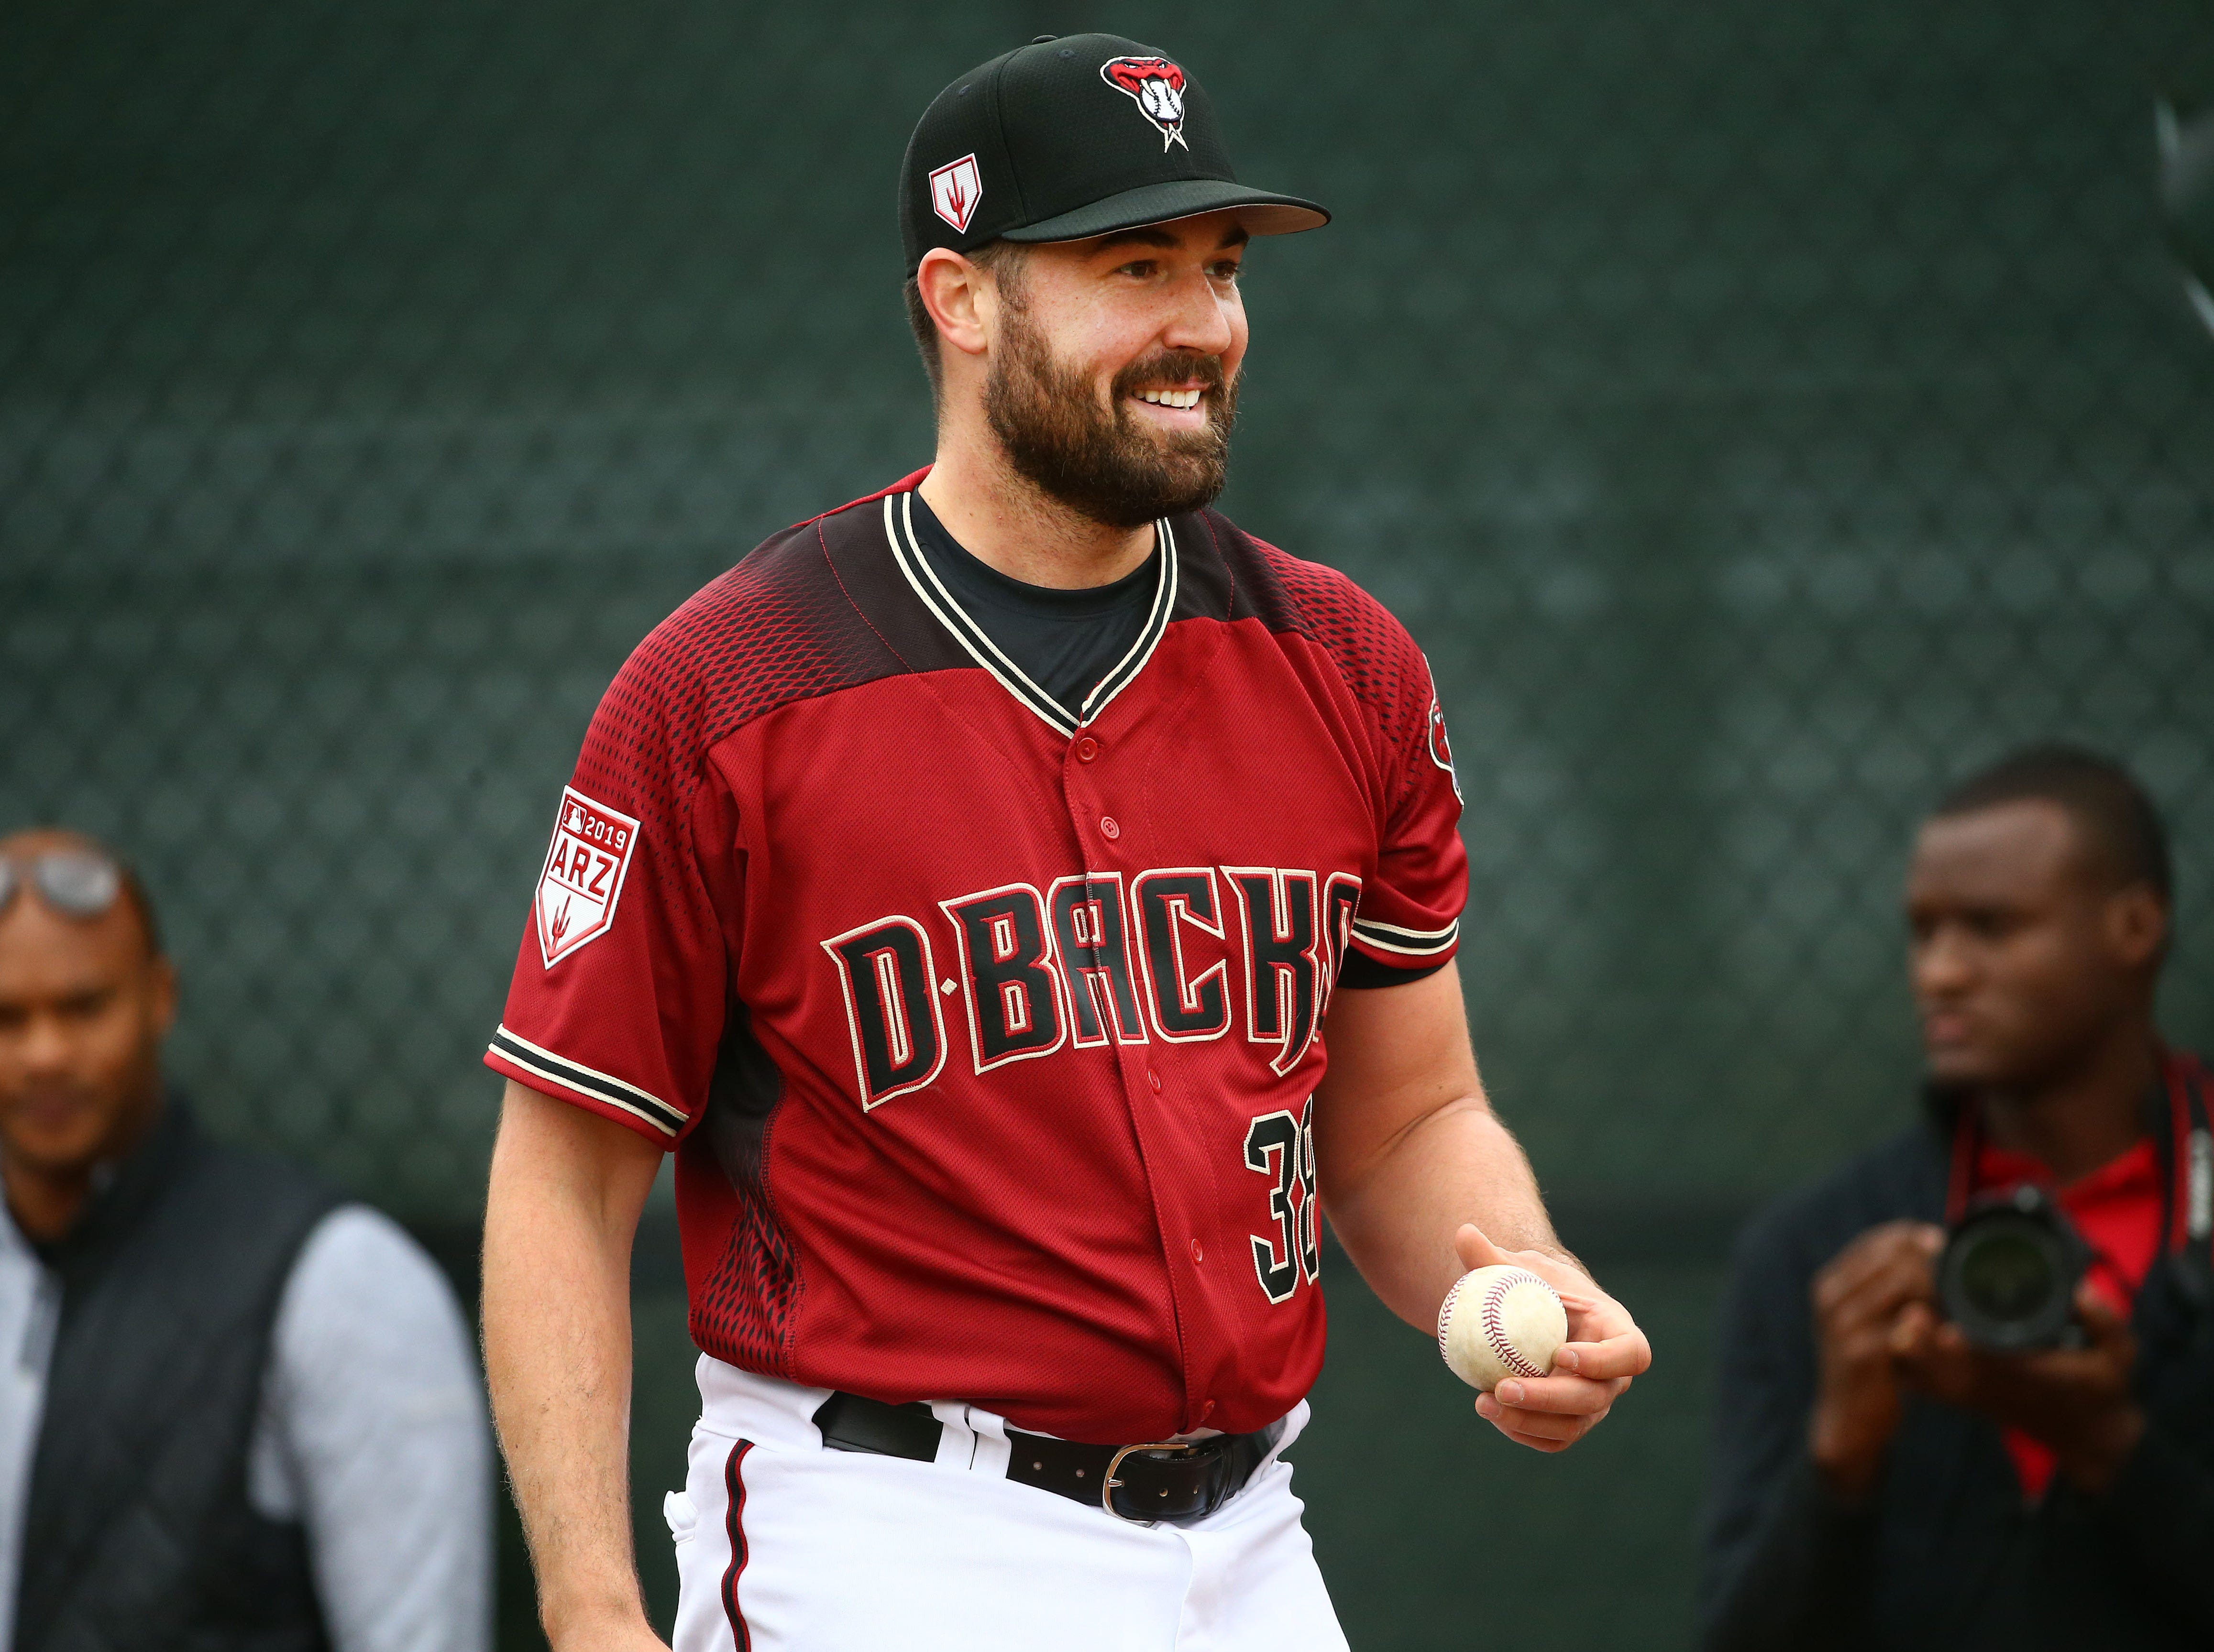 Arizona Diamondbacks pitcher Robbie Ray during the first day of spring training workouts on Feb. 13 at Salt River Fields in Scottsdale.